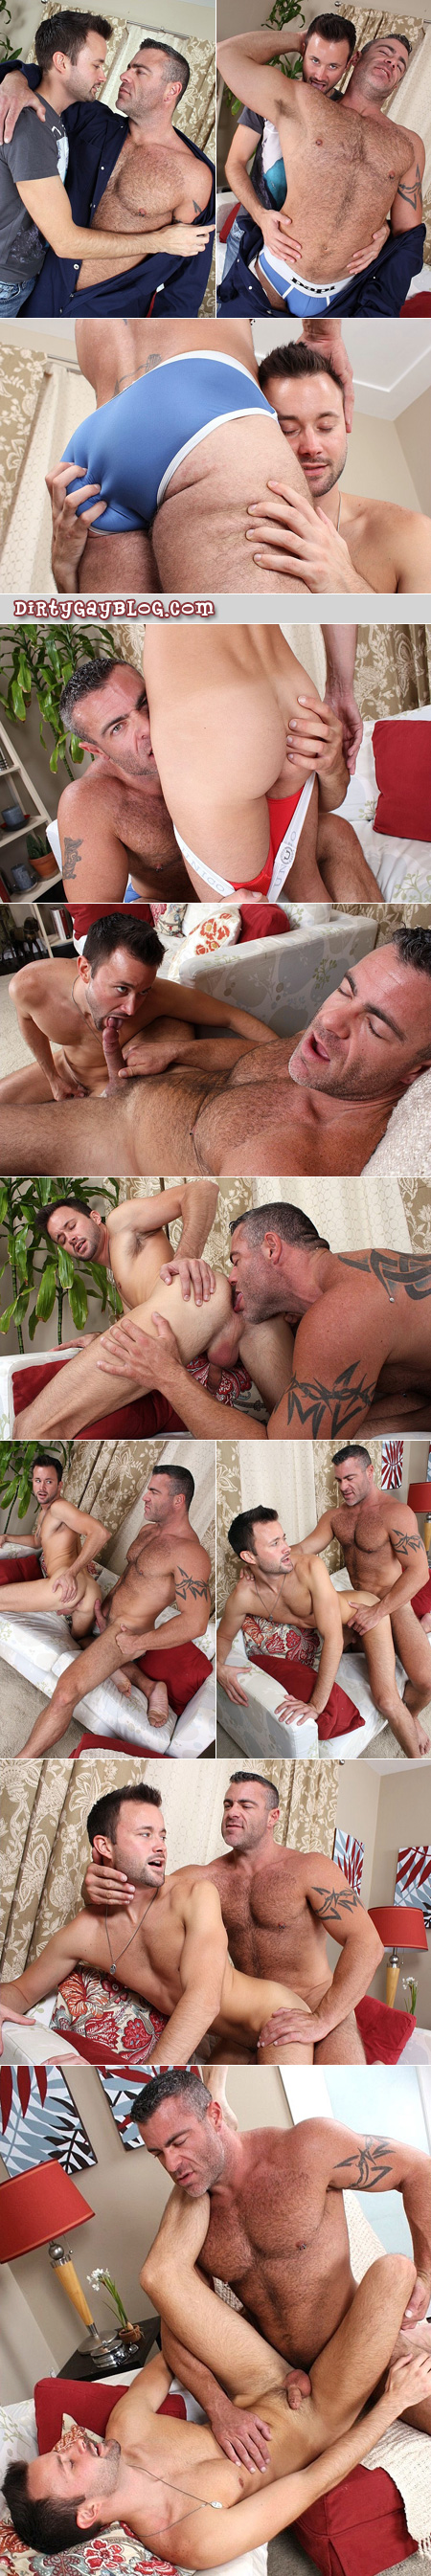 Butch hairy muscle top fucks a slim twink with a beard